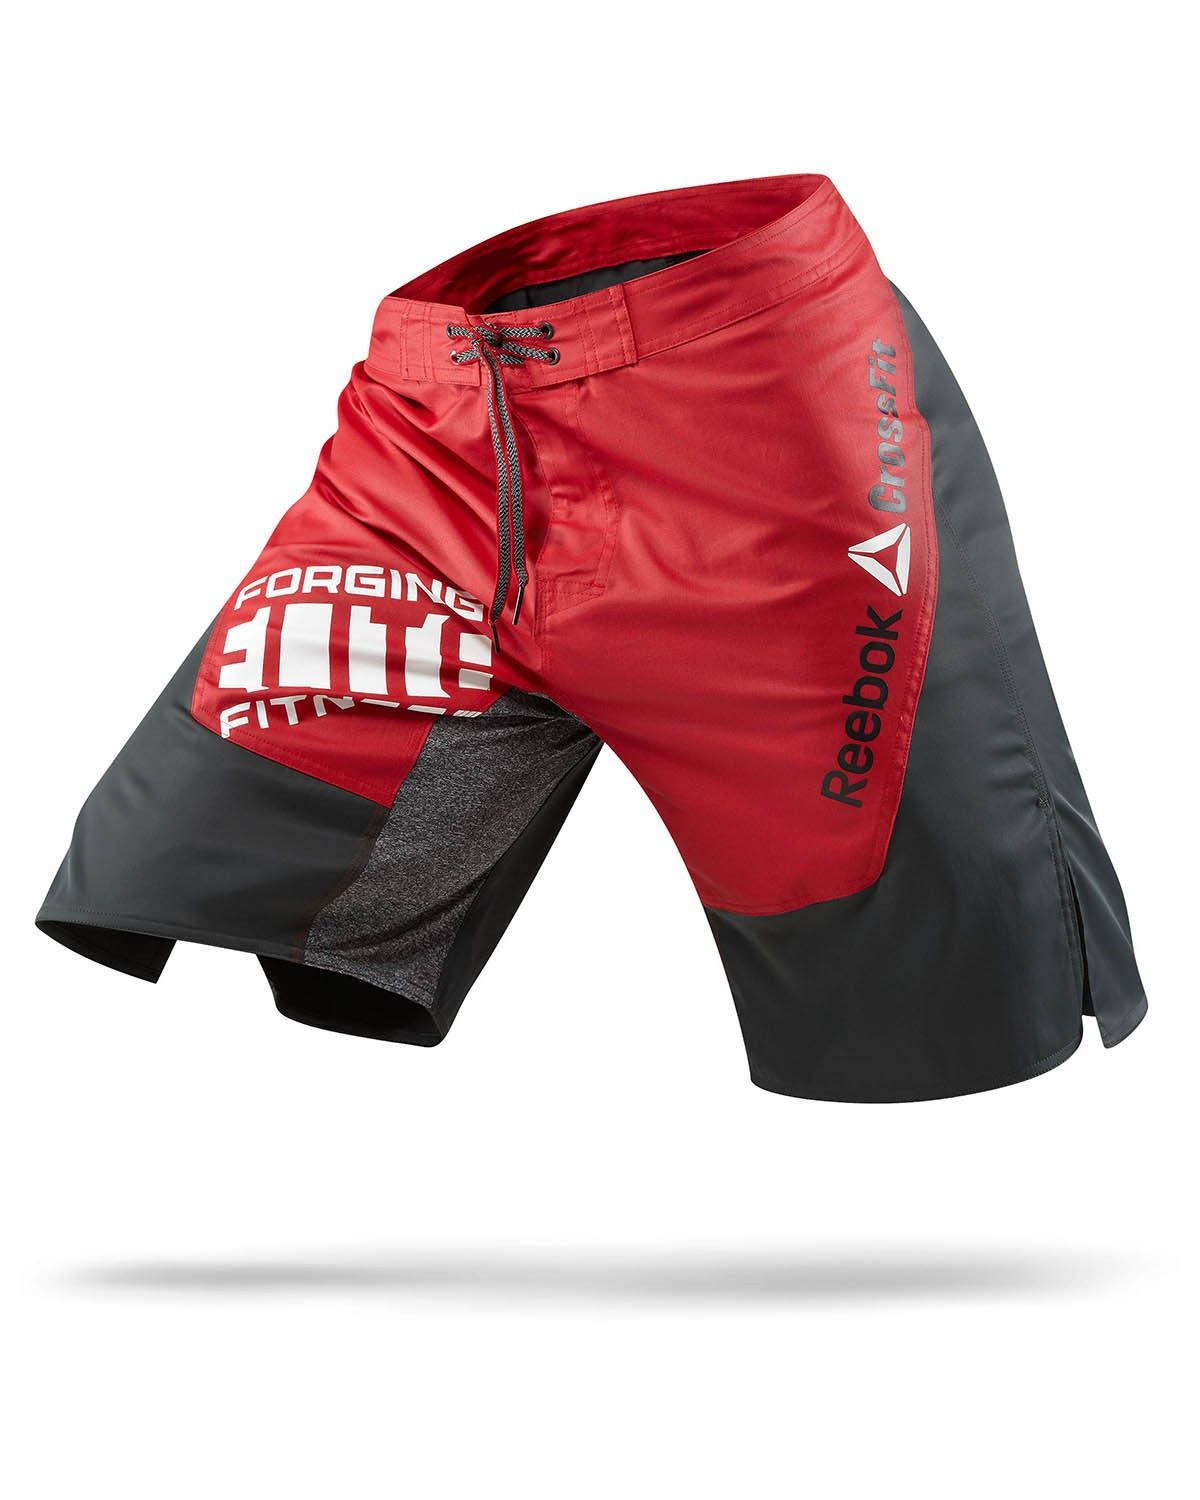 Crossfit Hq Store Canvas Forging Elite Fitness Boardshort Pants